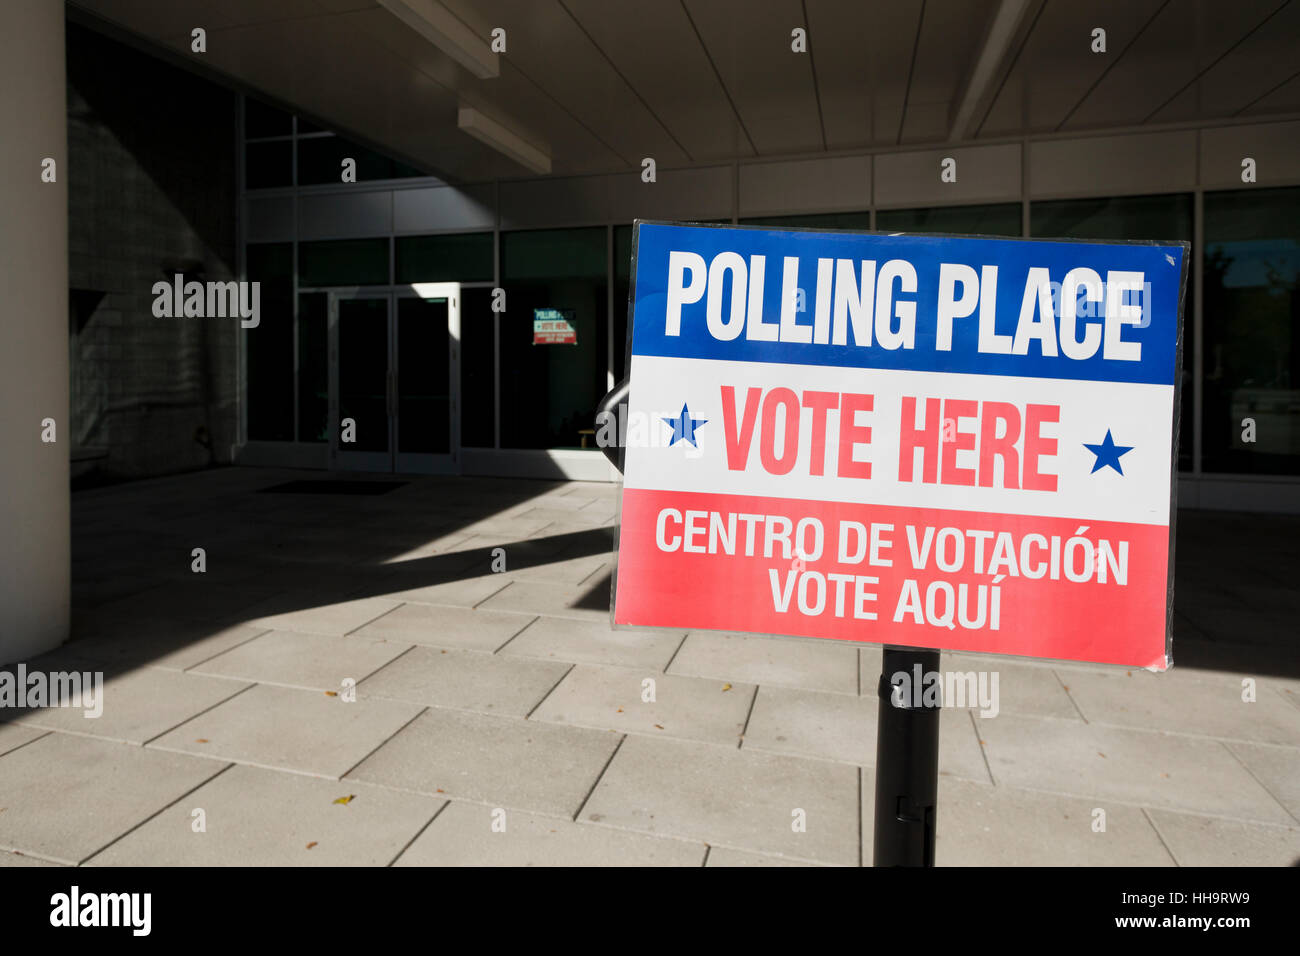 Voting place, Vote Here sign - Arlington, Virginia USA - Stock Image